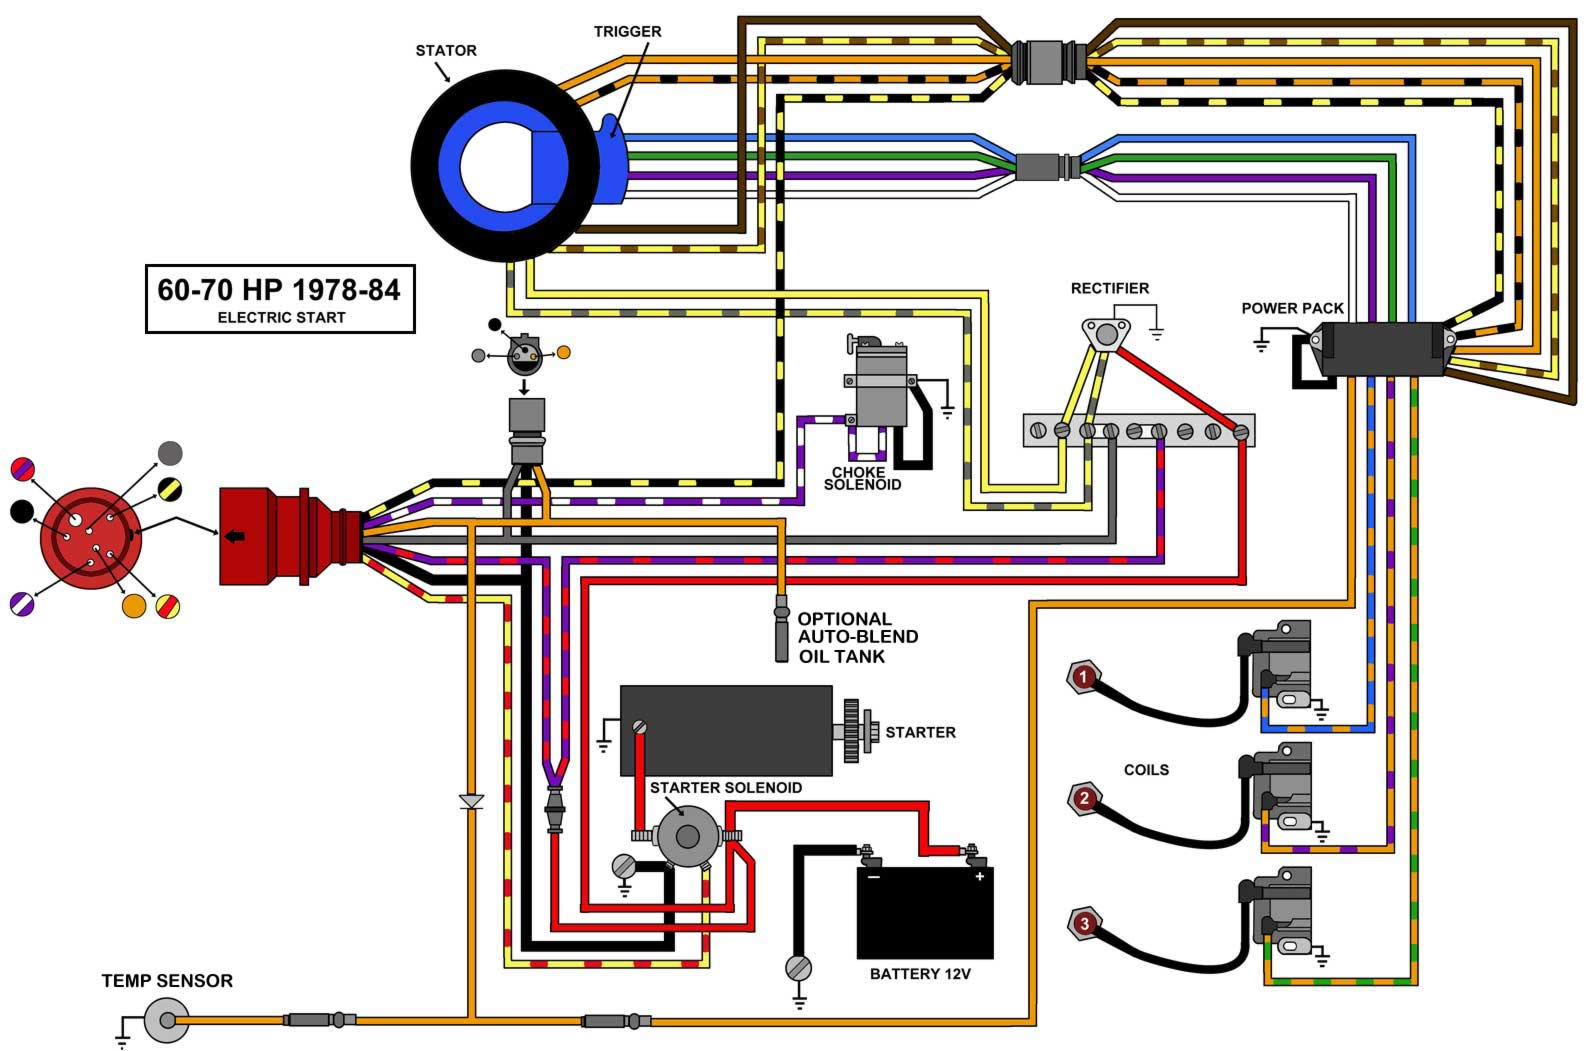 78 84_3 CYL_EL wiring tach from johnson controls page 1 iboats boating forums  at gsmx.co